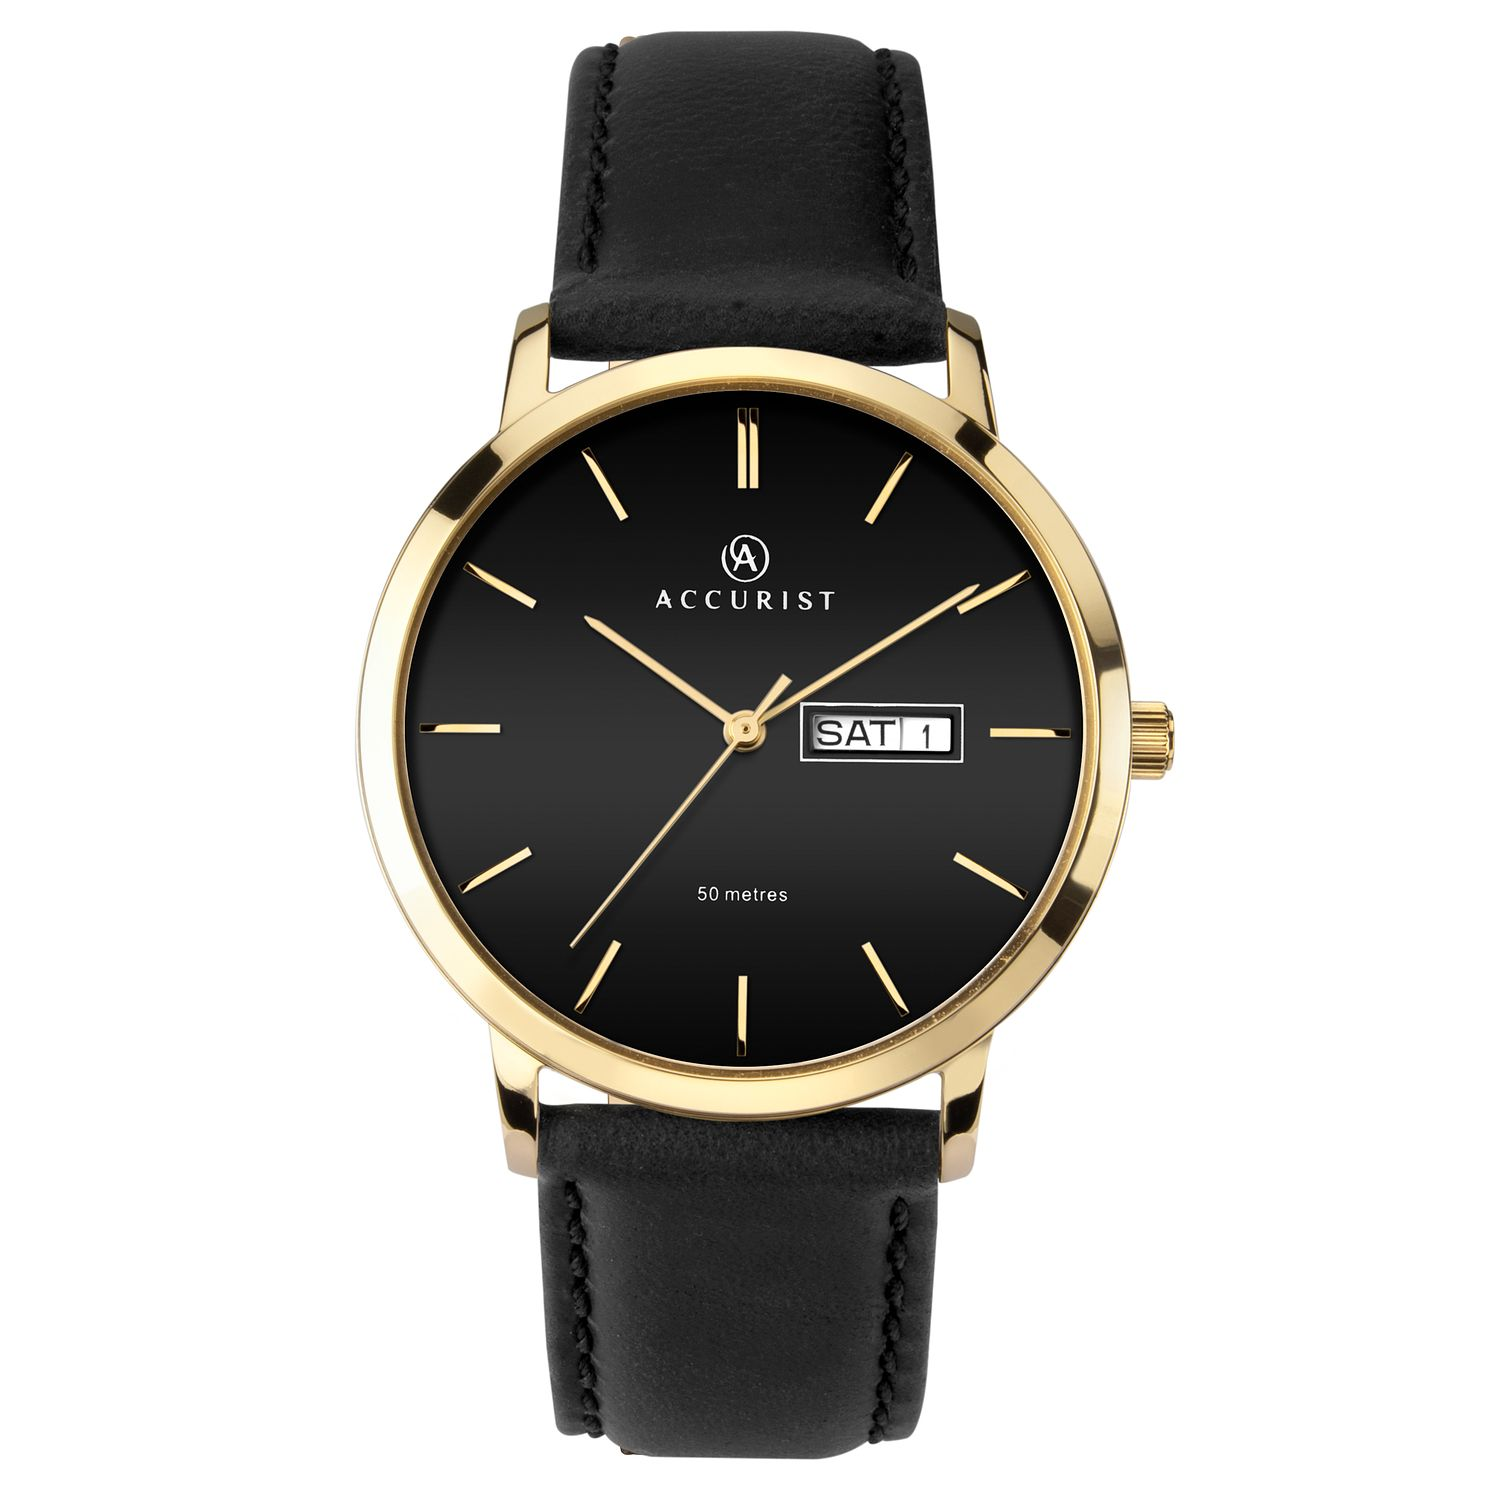 Accurist Men's Black Leather Strap Watch - Product number 4257030